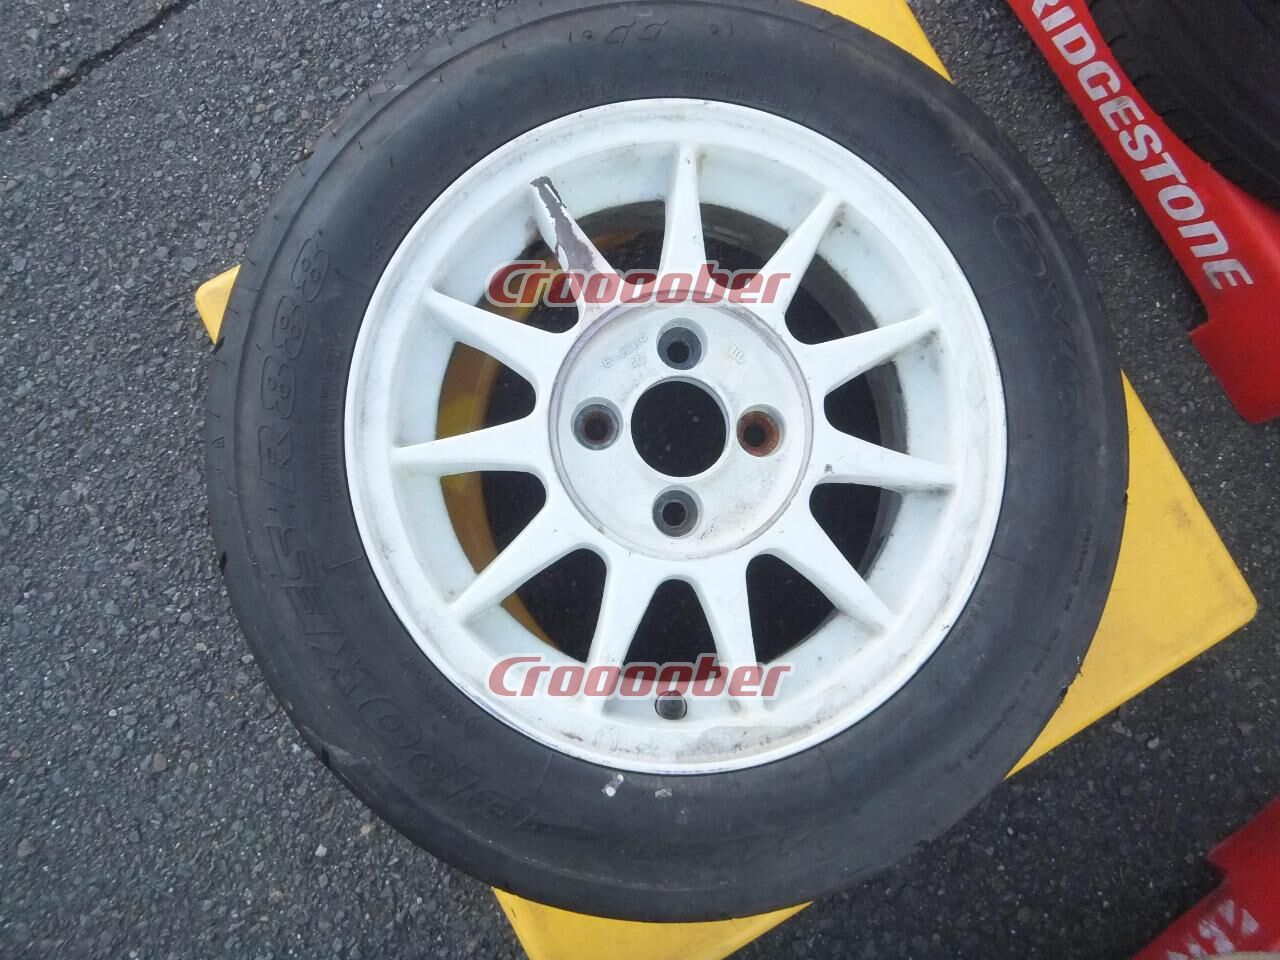 Toyo Proxes R888 >> Manufacturer Unknown 11 Spoke Toyo Proxes R888 6 0jx14 40100 4h For Sale Croooober